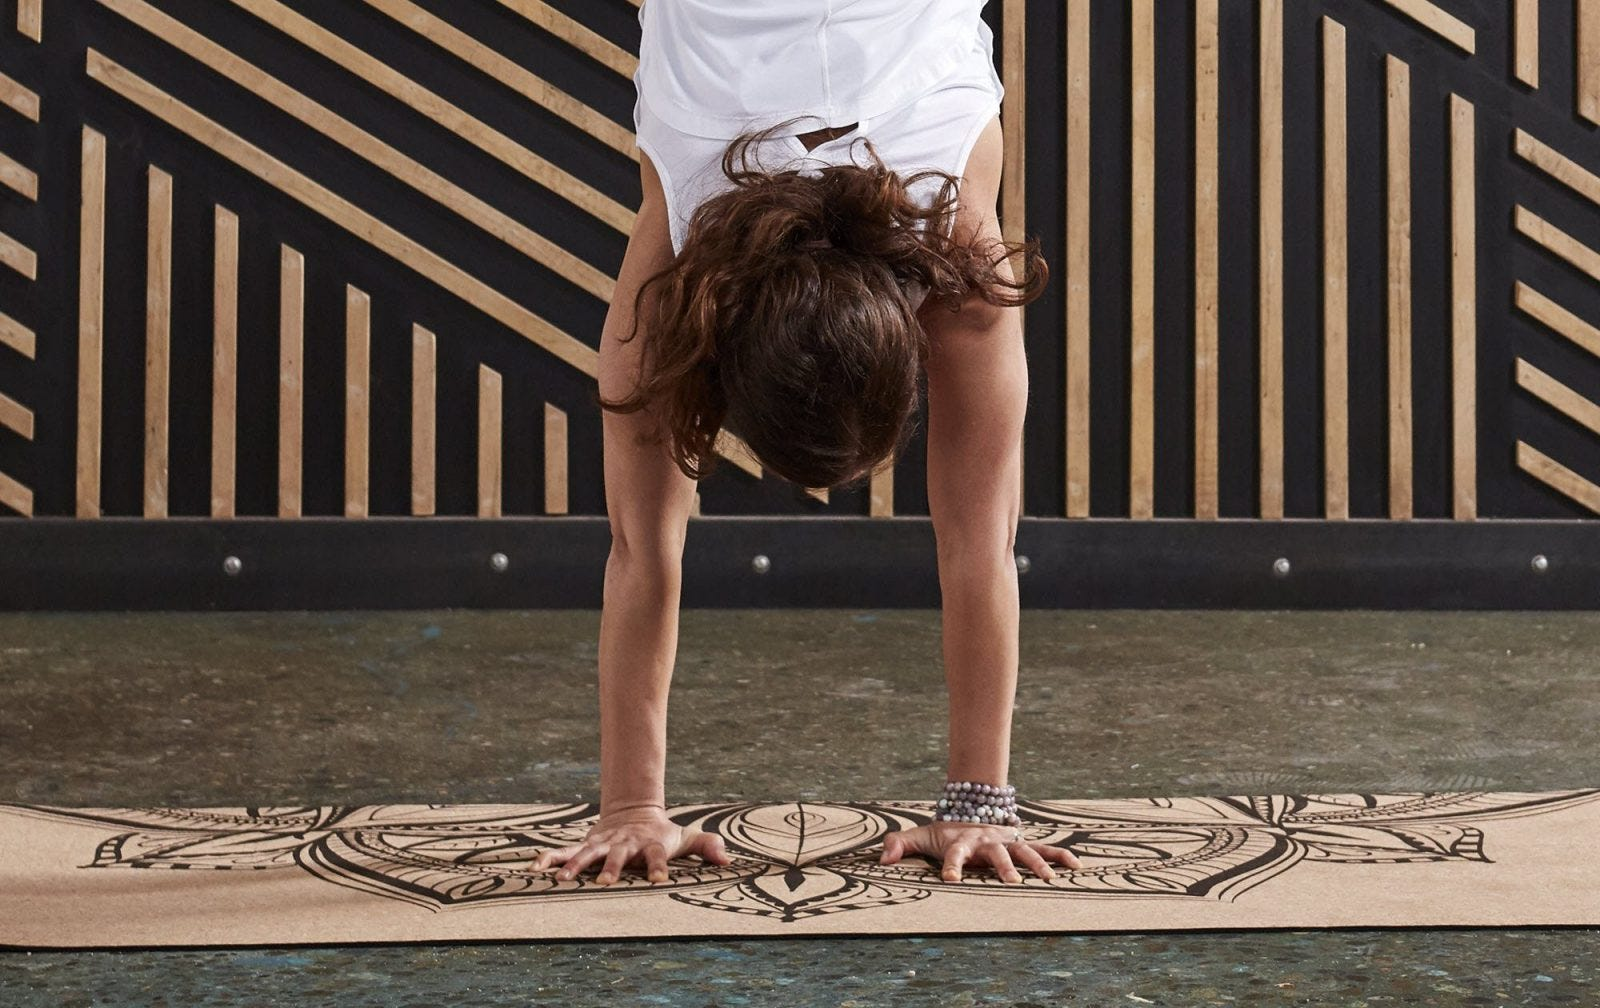 A woman in a yoga pose on a Gaiam cork yoga mat.